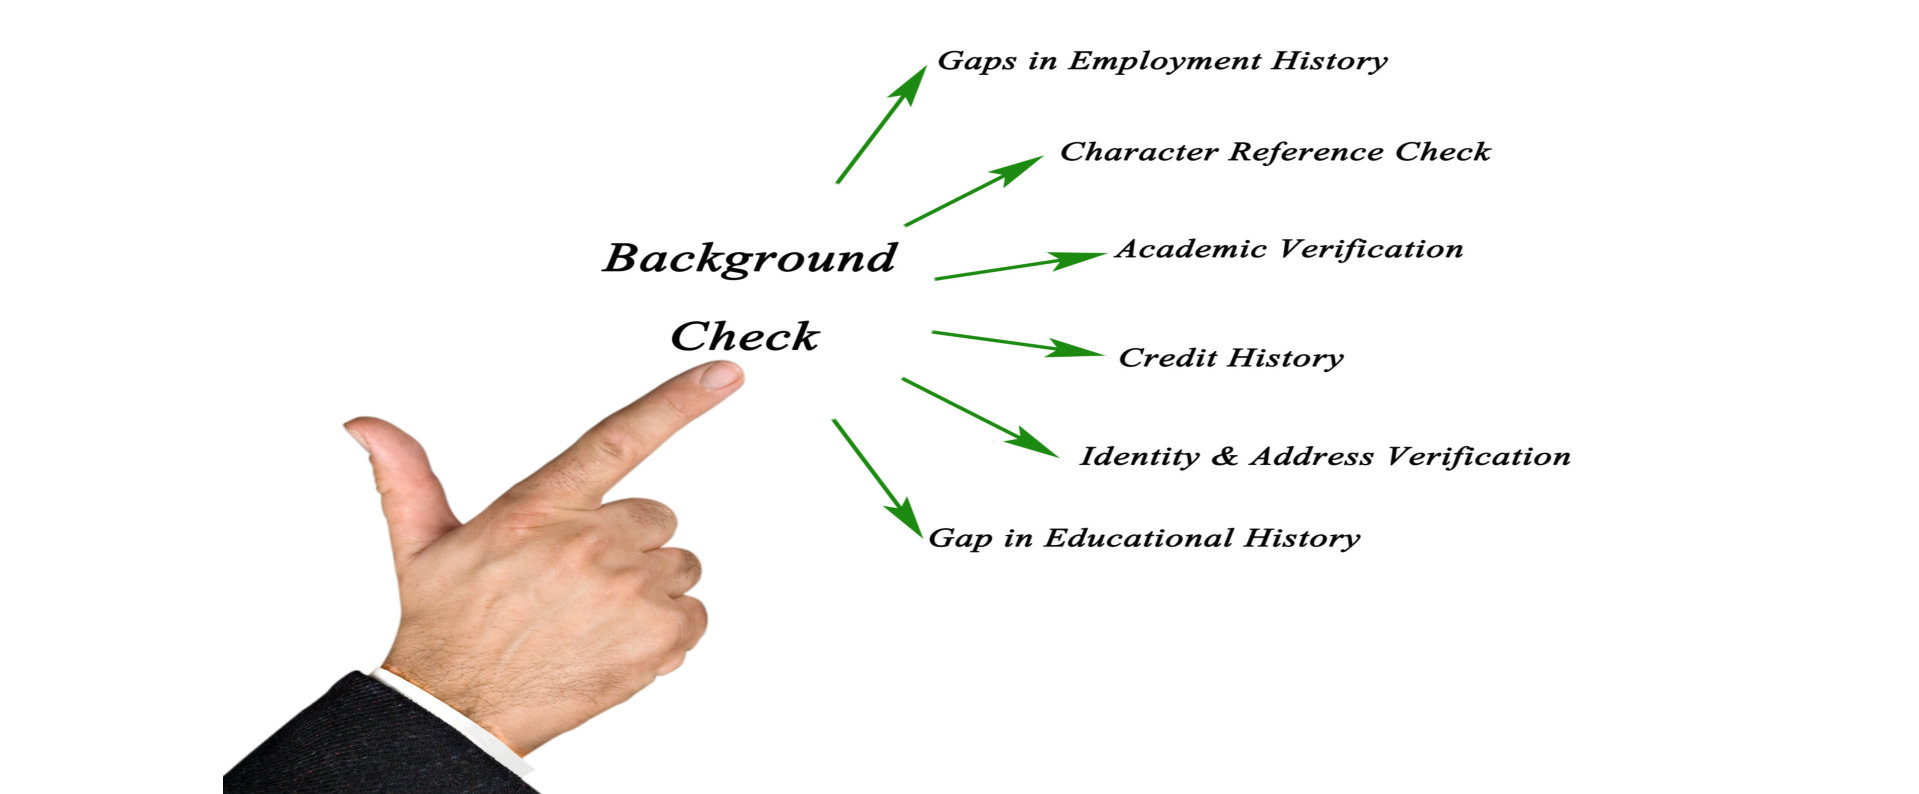 a hand pointing at a background check